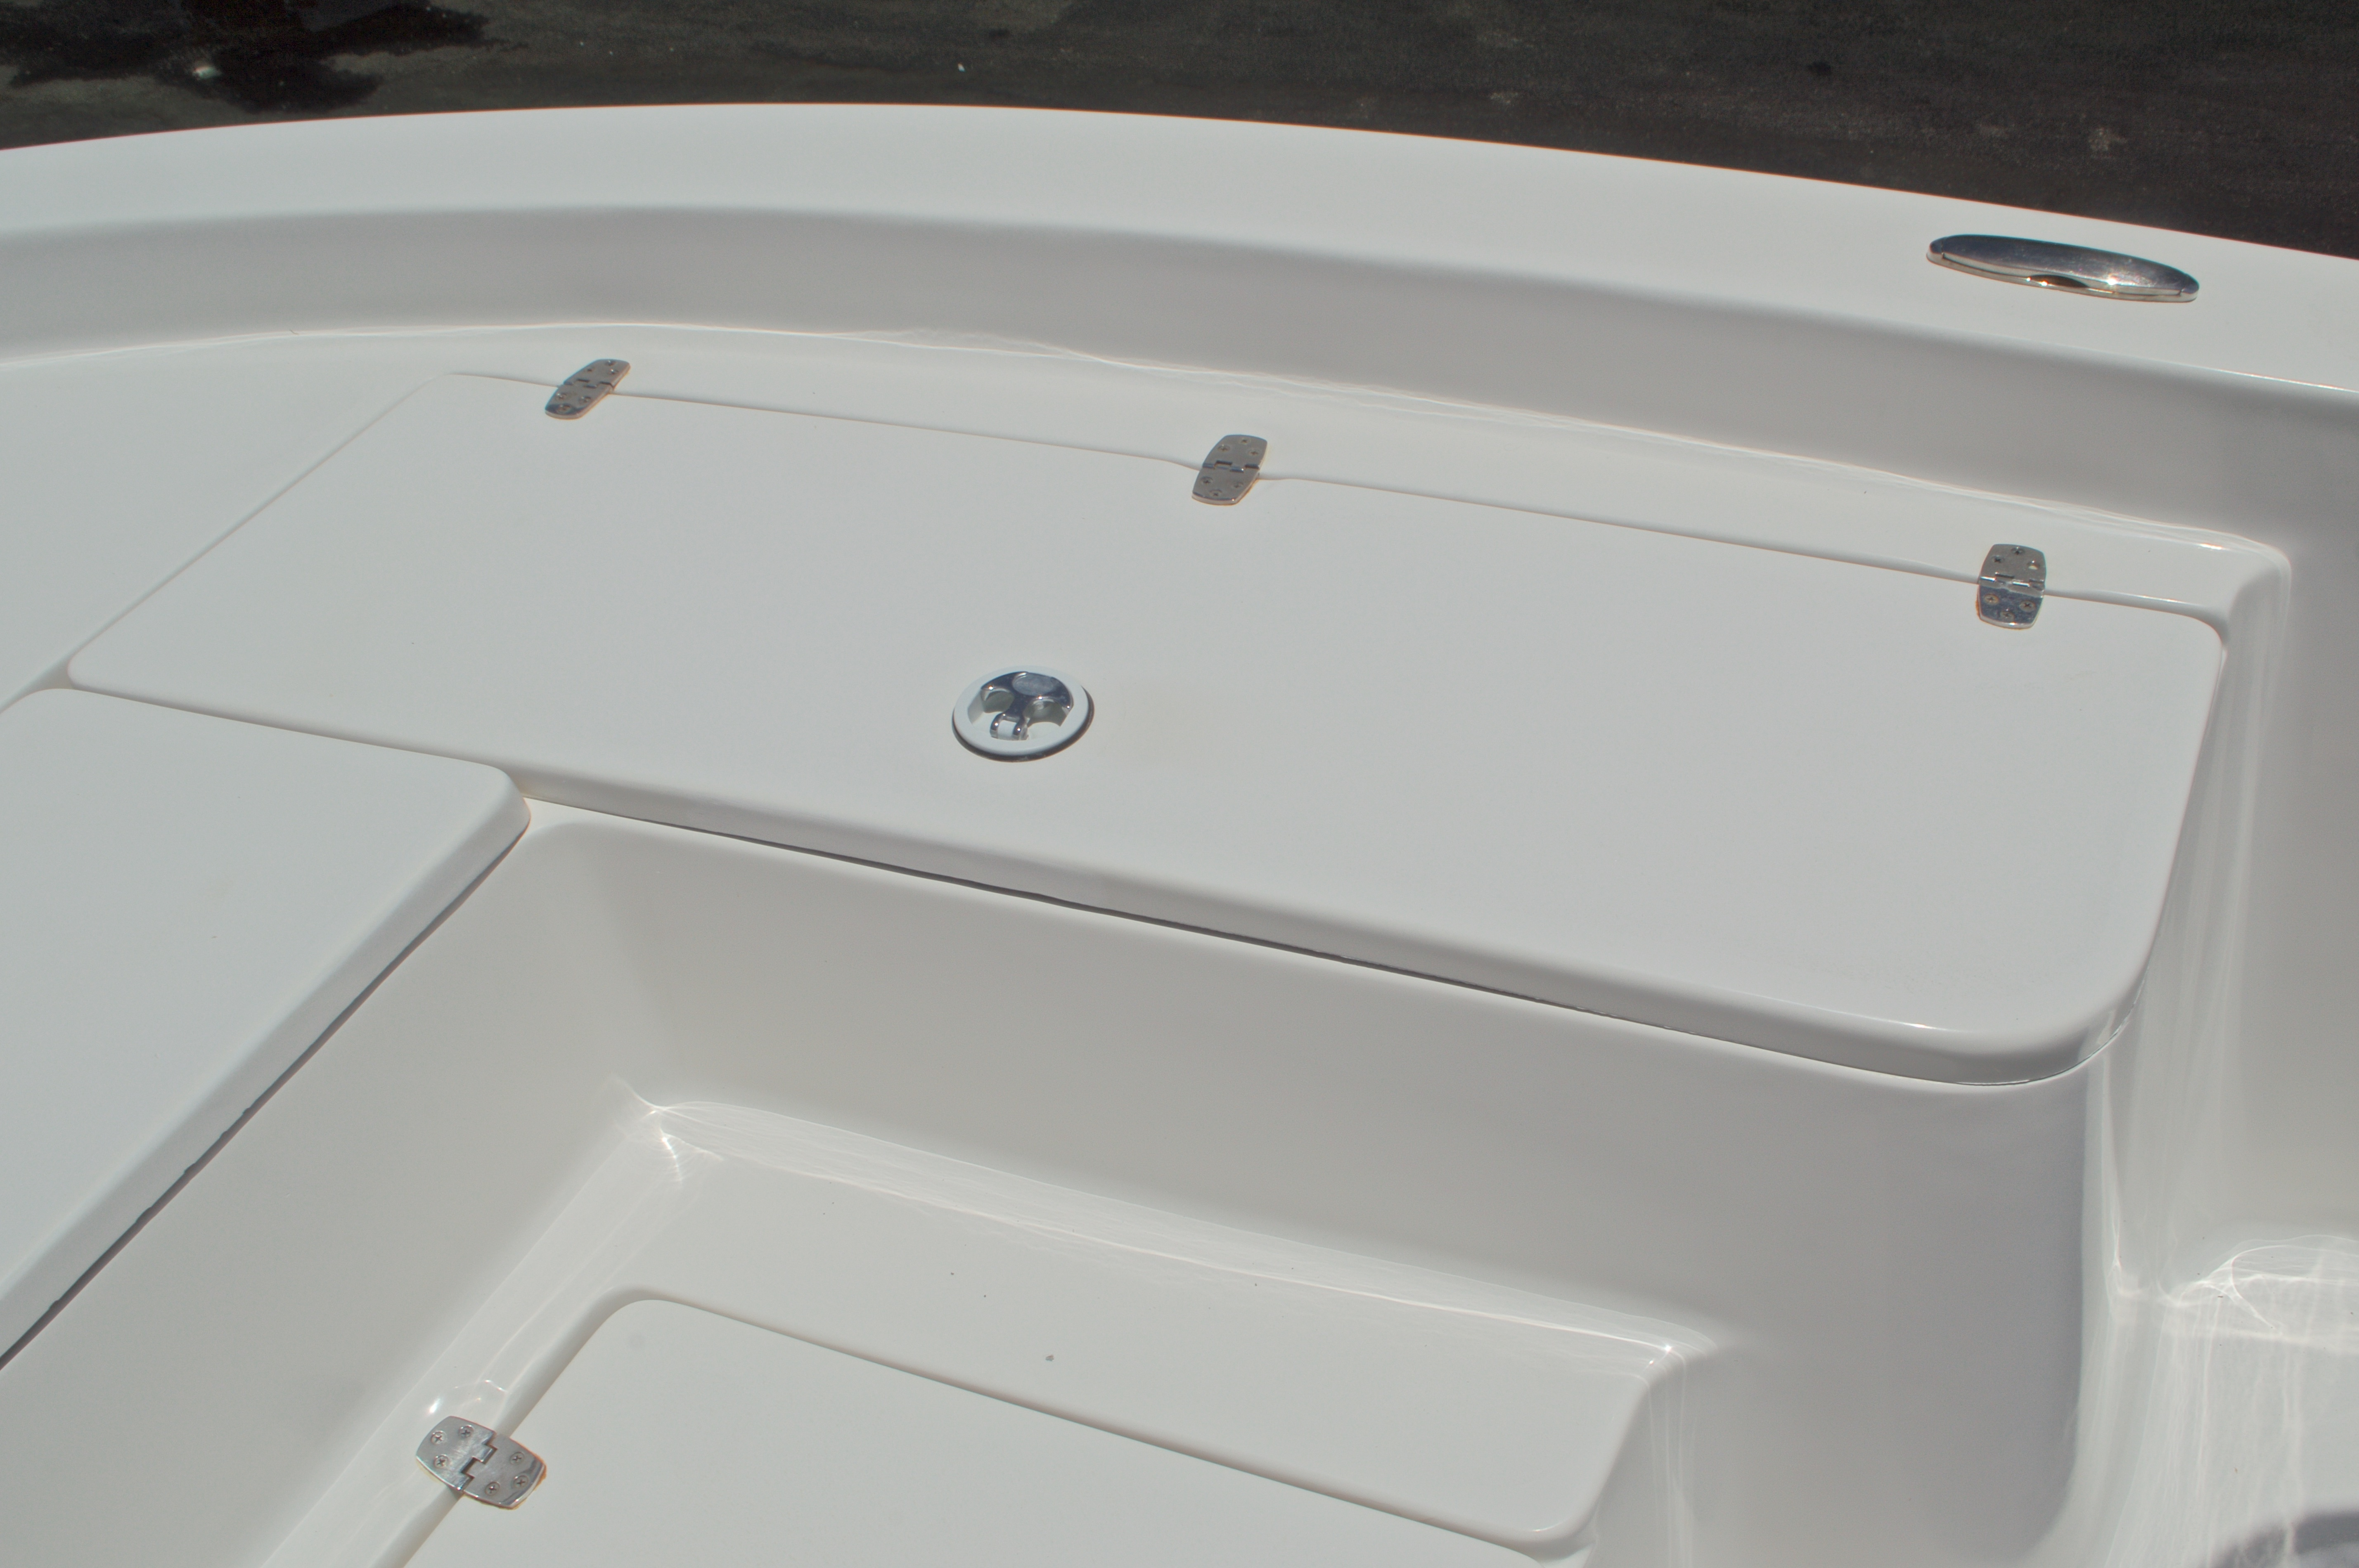 Thumbnail 53 for Used 2005 Sea Chaser 245 Bay Runner LX boat for sale in West Palm Beach, FL